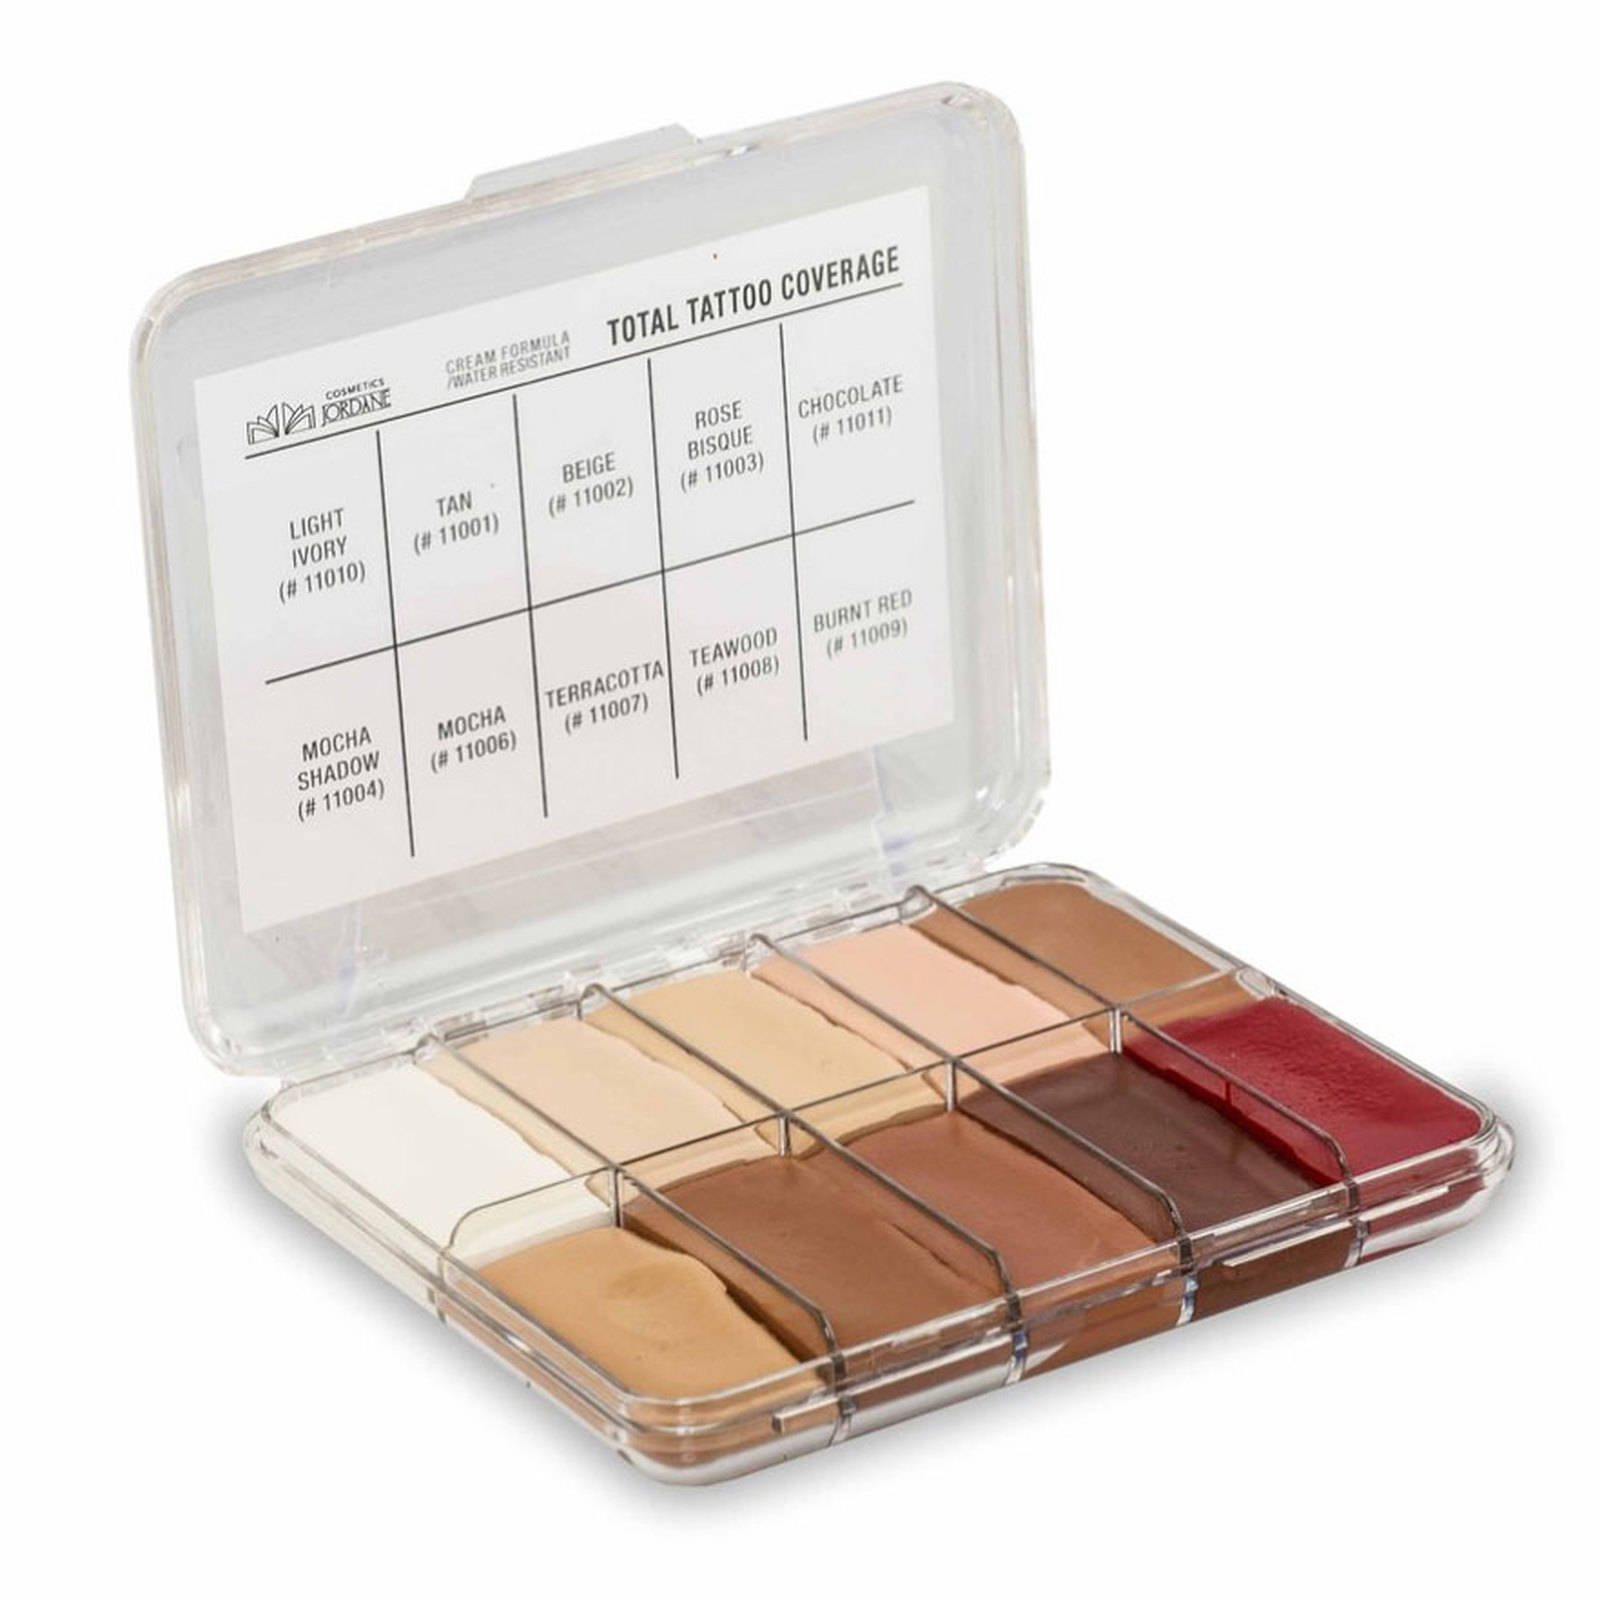 Jordane Total Tattoo Coverage Palette | Alcone Company